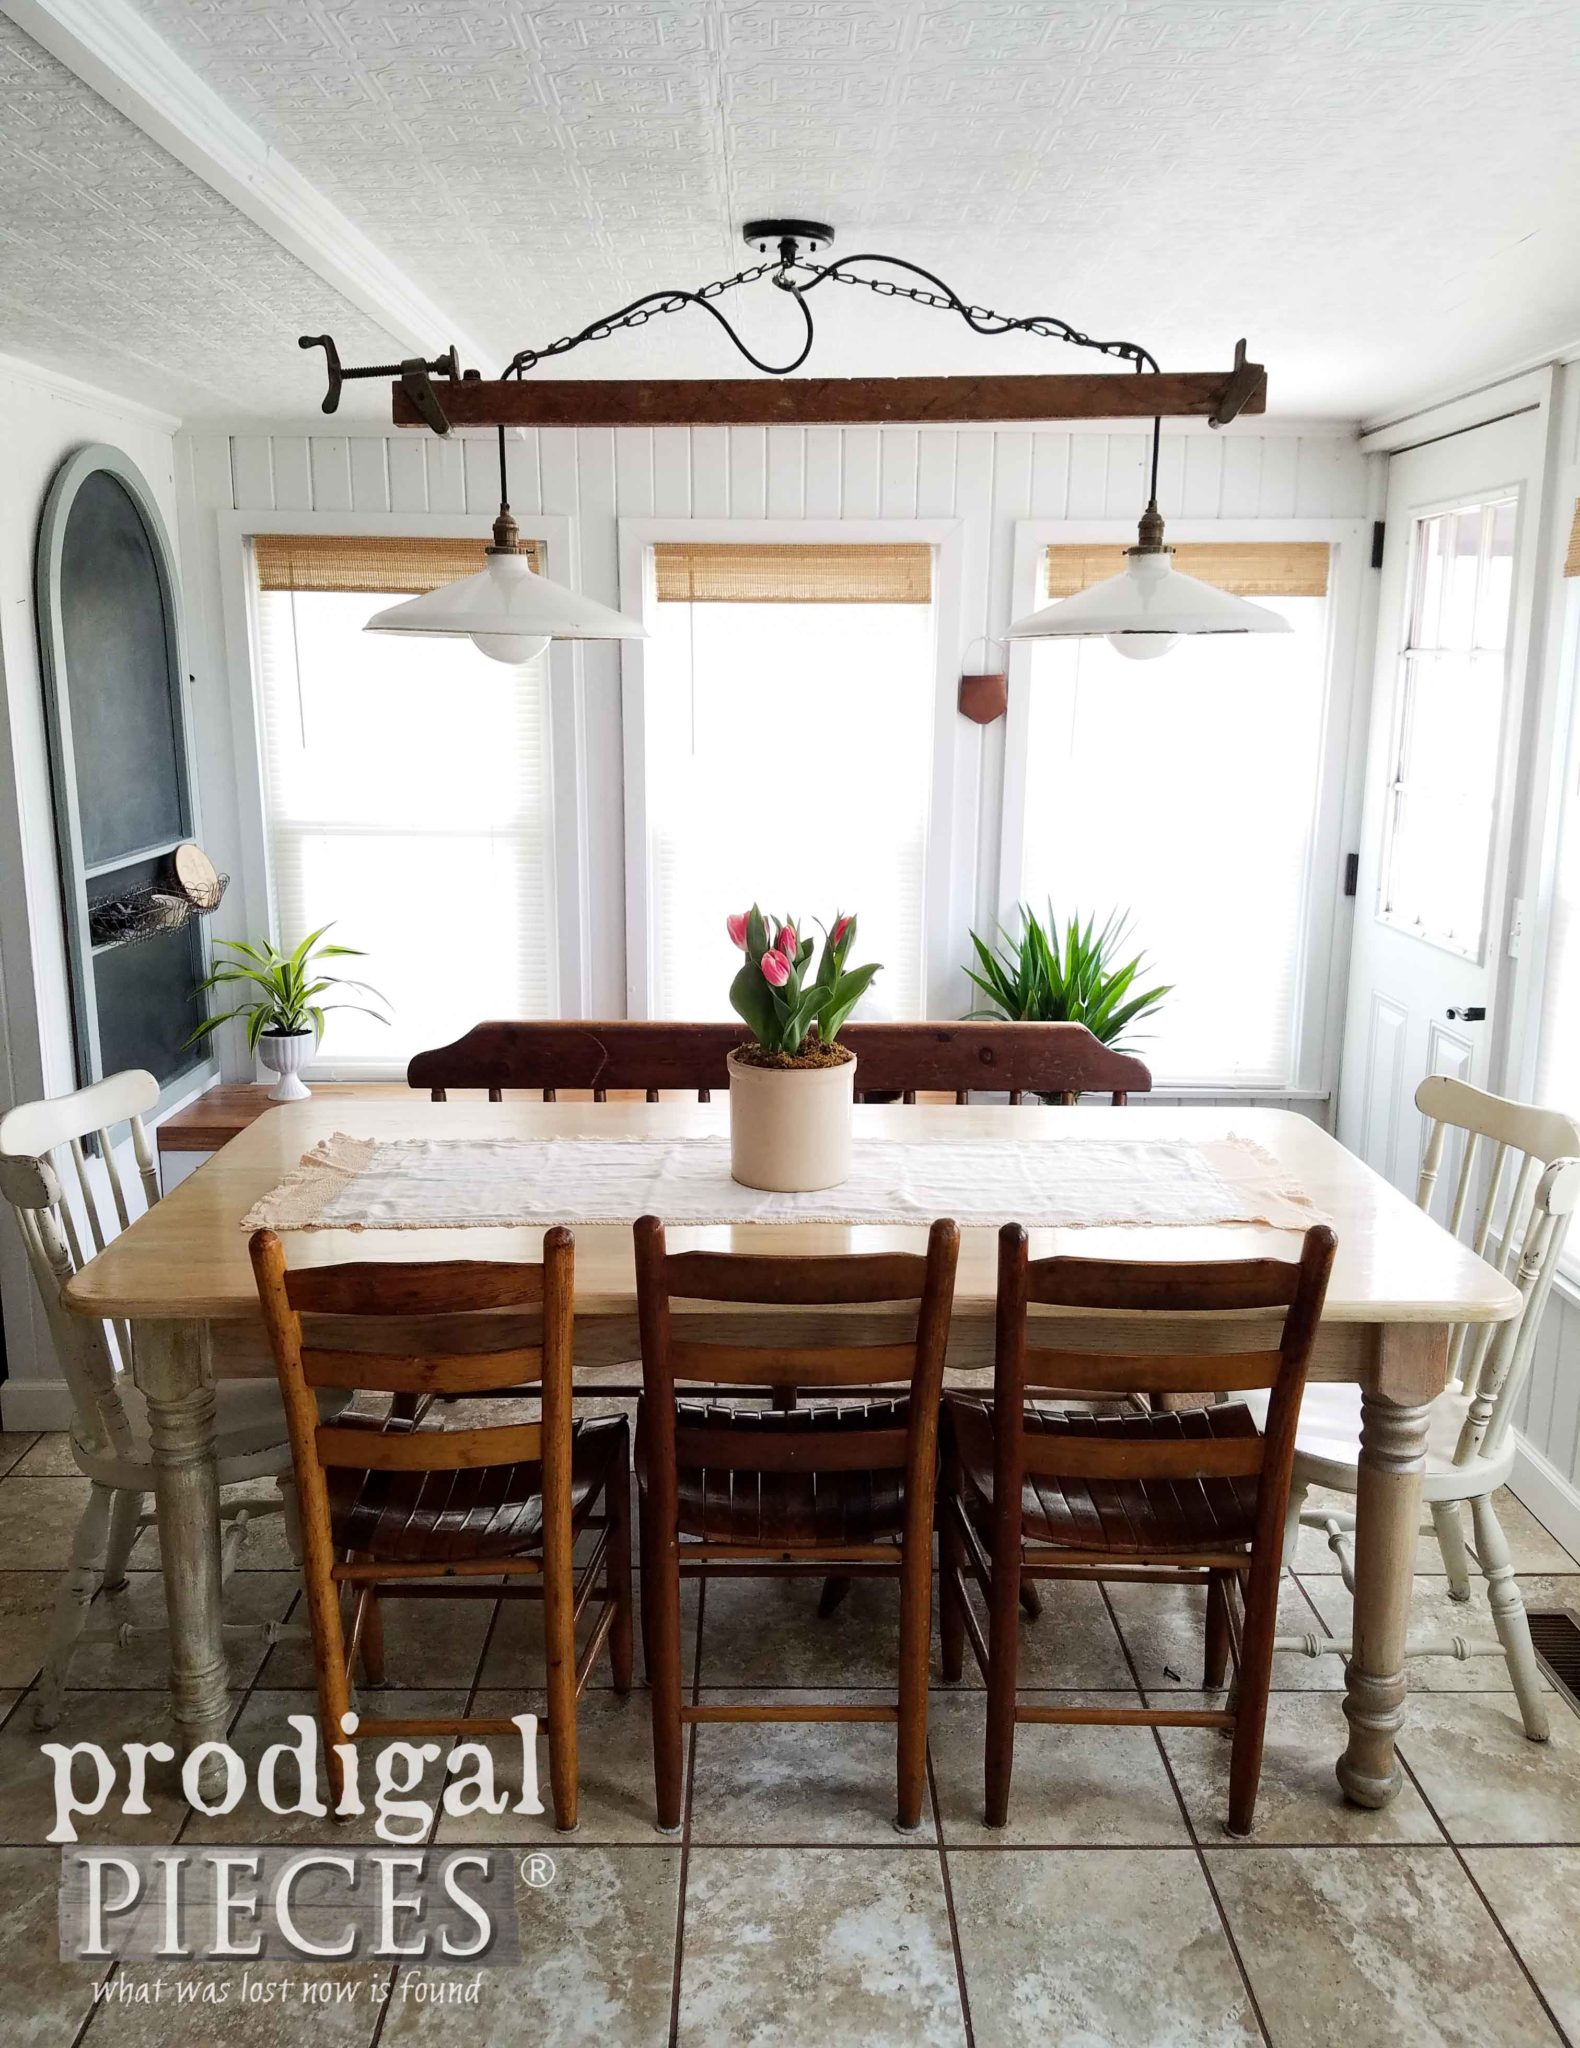 Rustic Farmhouse Dining Table by Larissa of Prodigal Pieces | prodigalpieces.com